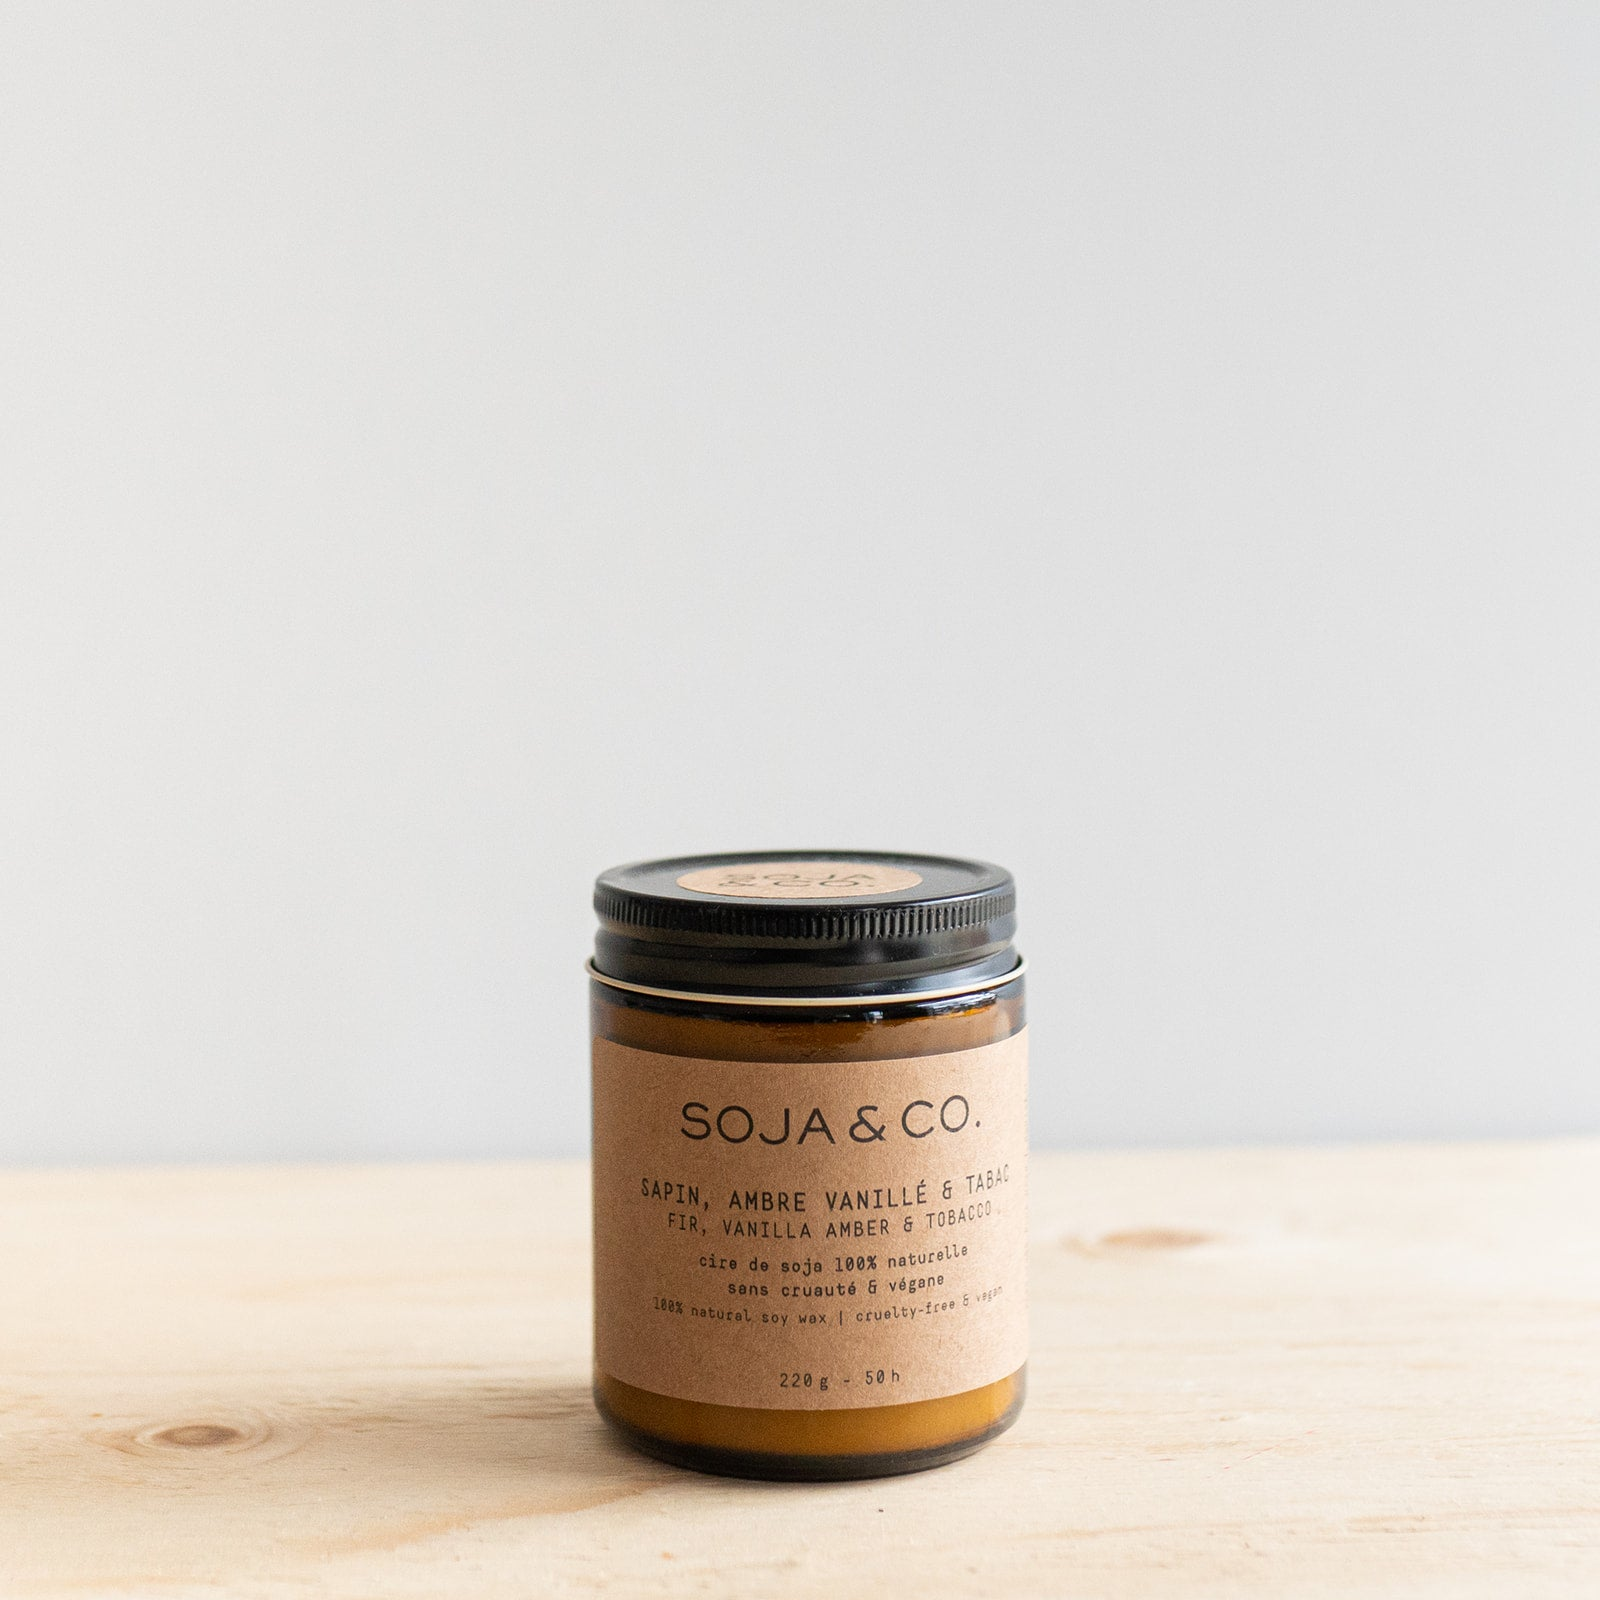 Vanilla Amber & Tobacco Candle - Rug & Weave